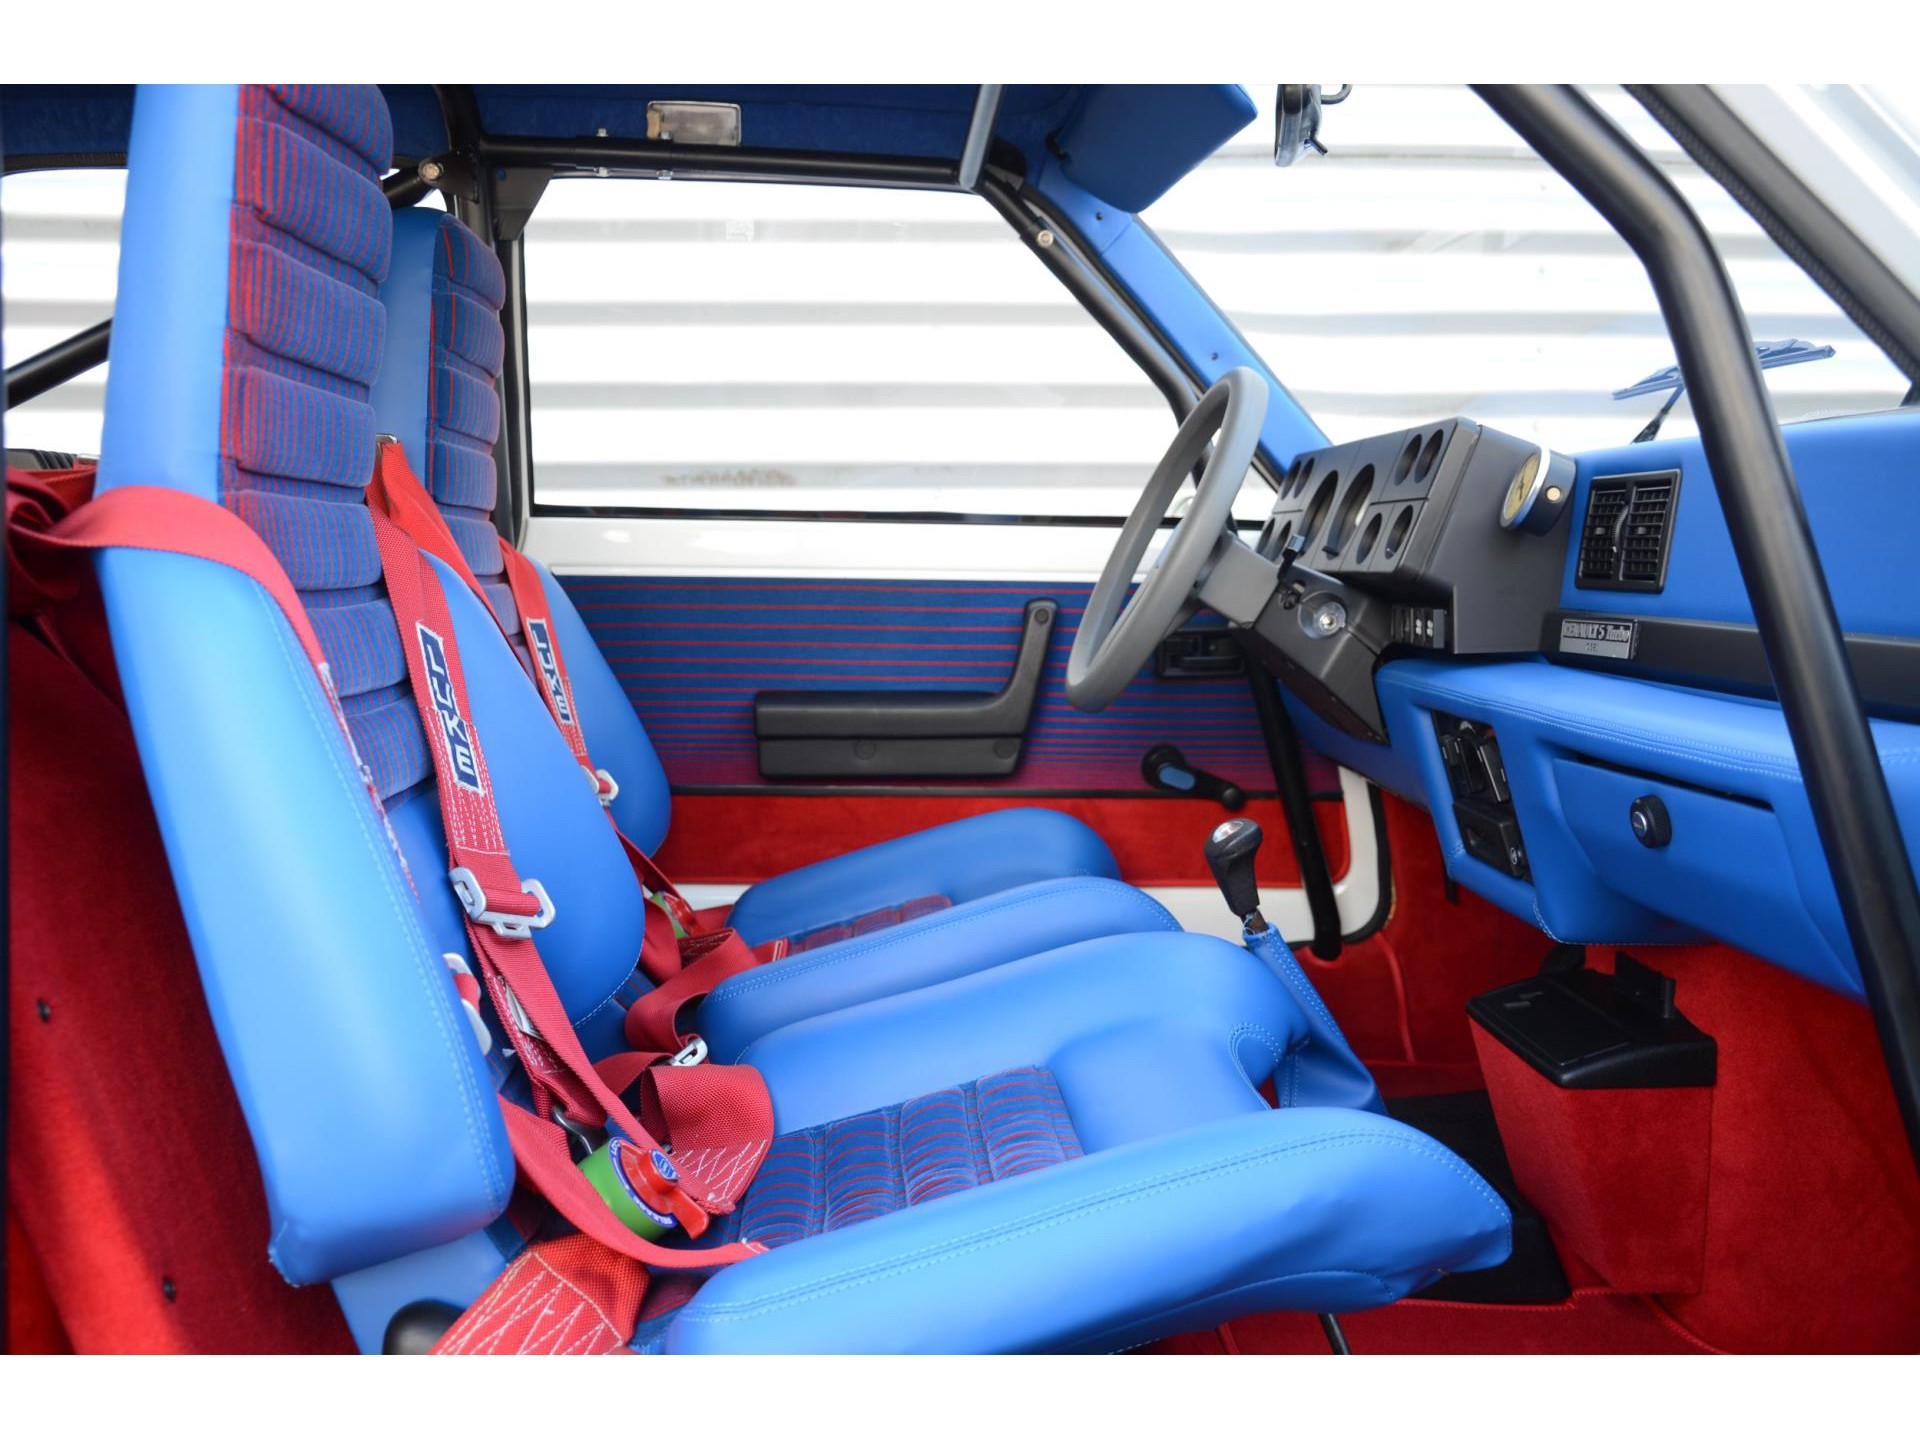 Renault-5-Turbo-Series-1-for-sale-54